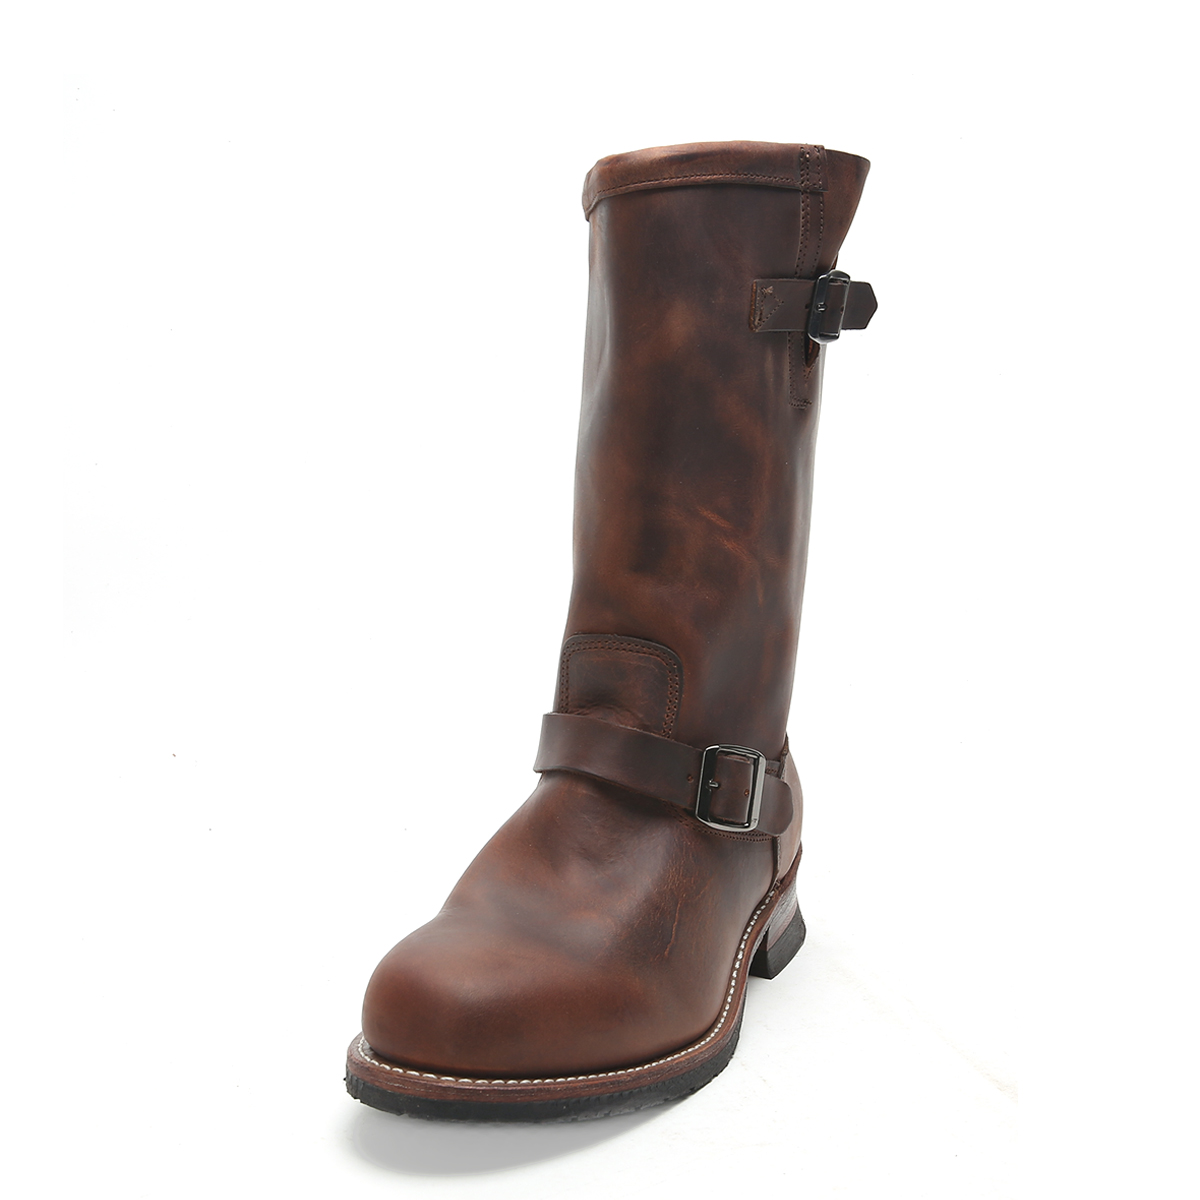 Wolverine Men's Stockton 1000 Mile Engineer Boots W05143 Brown 12